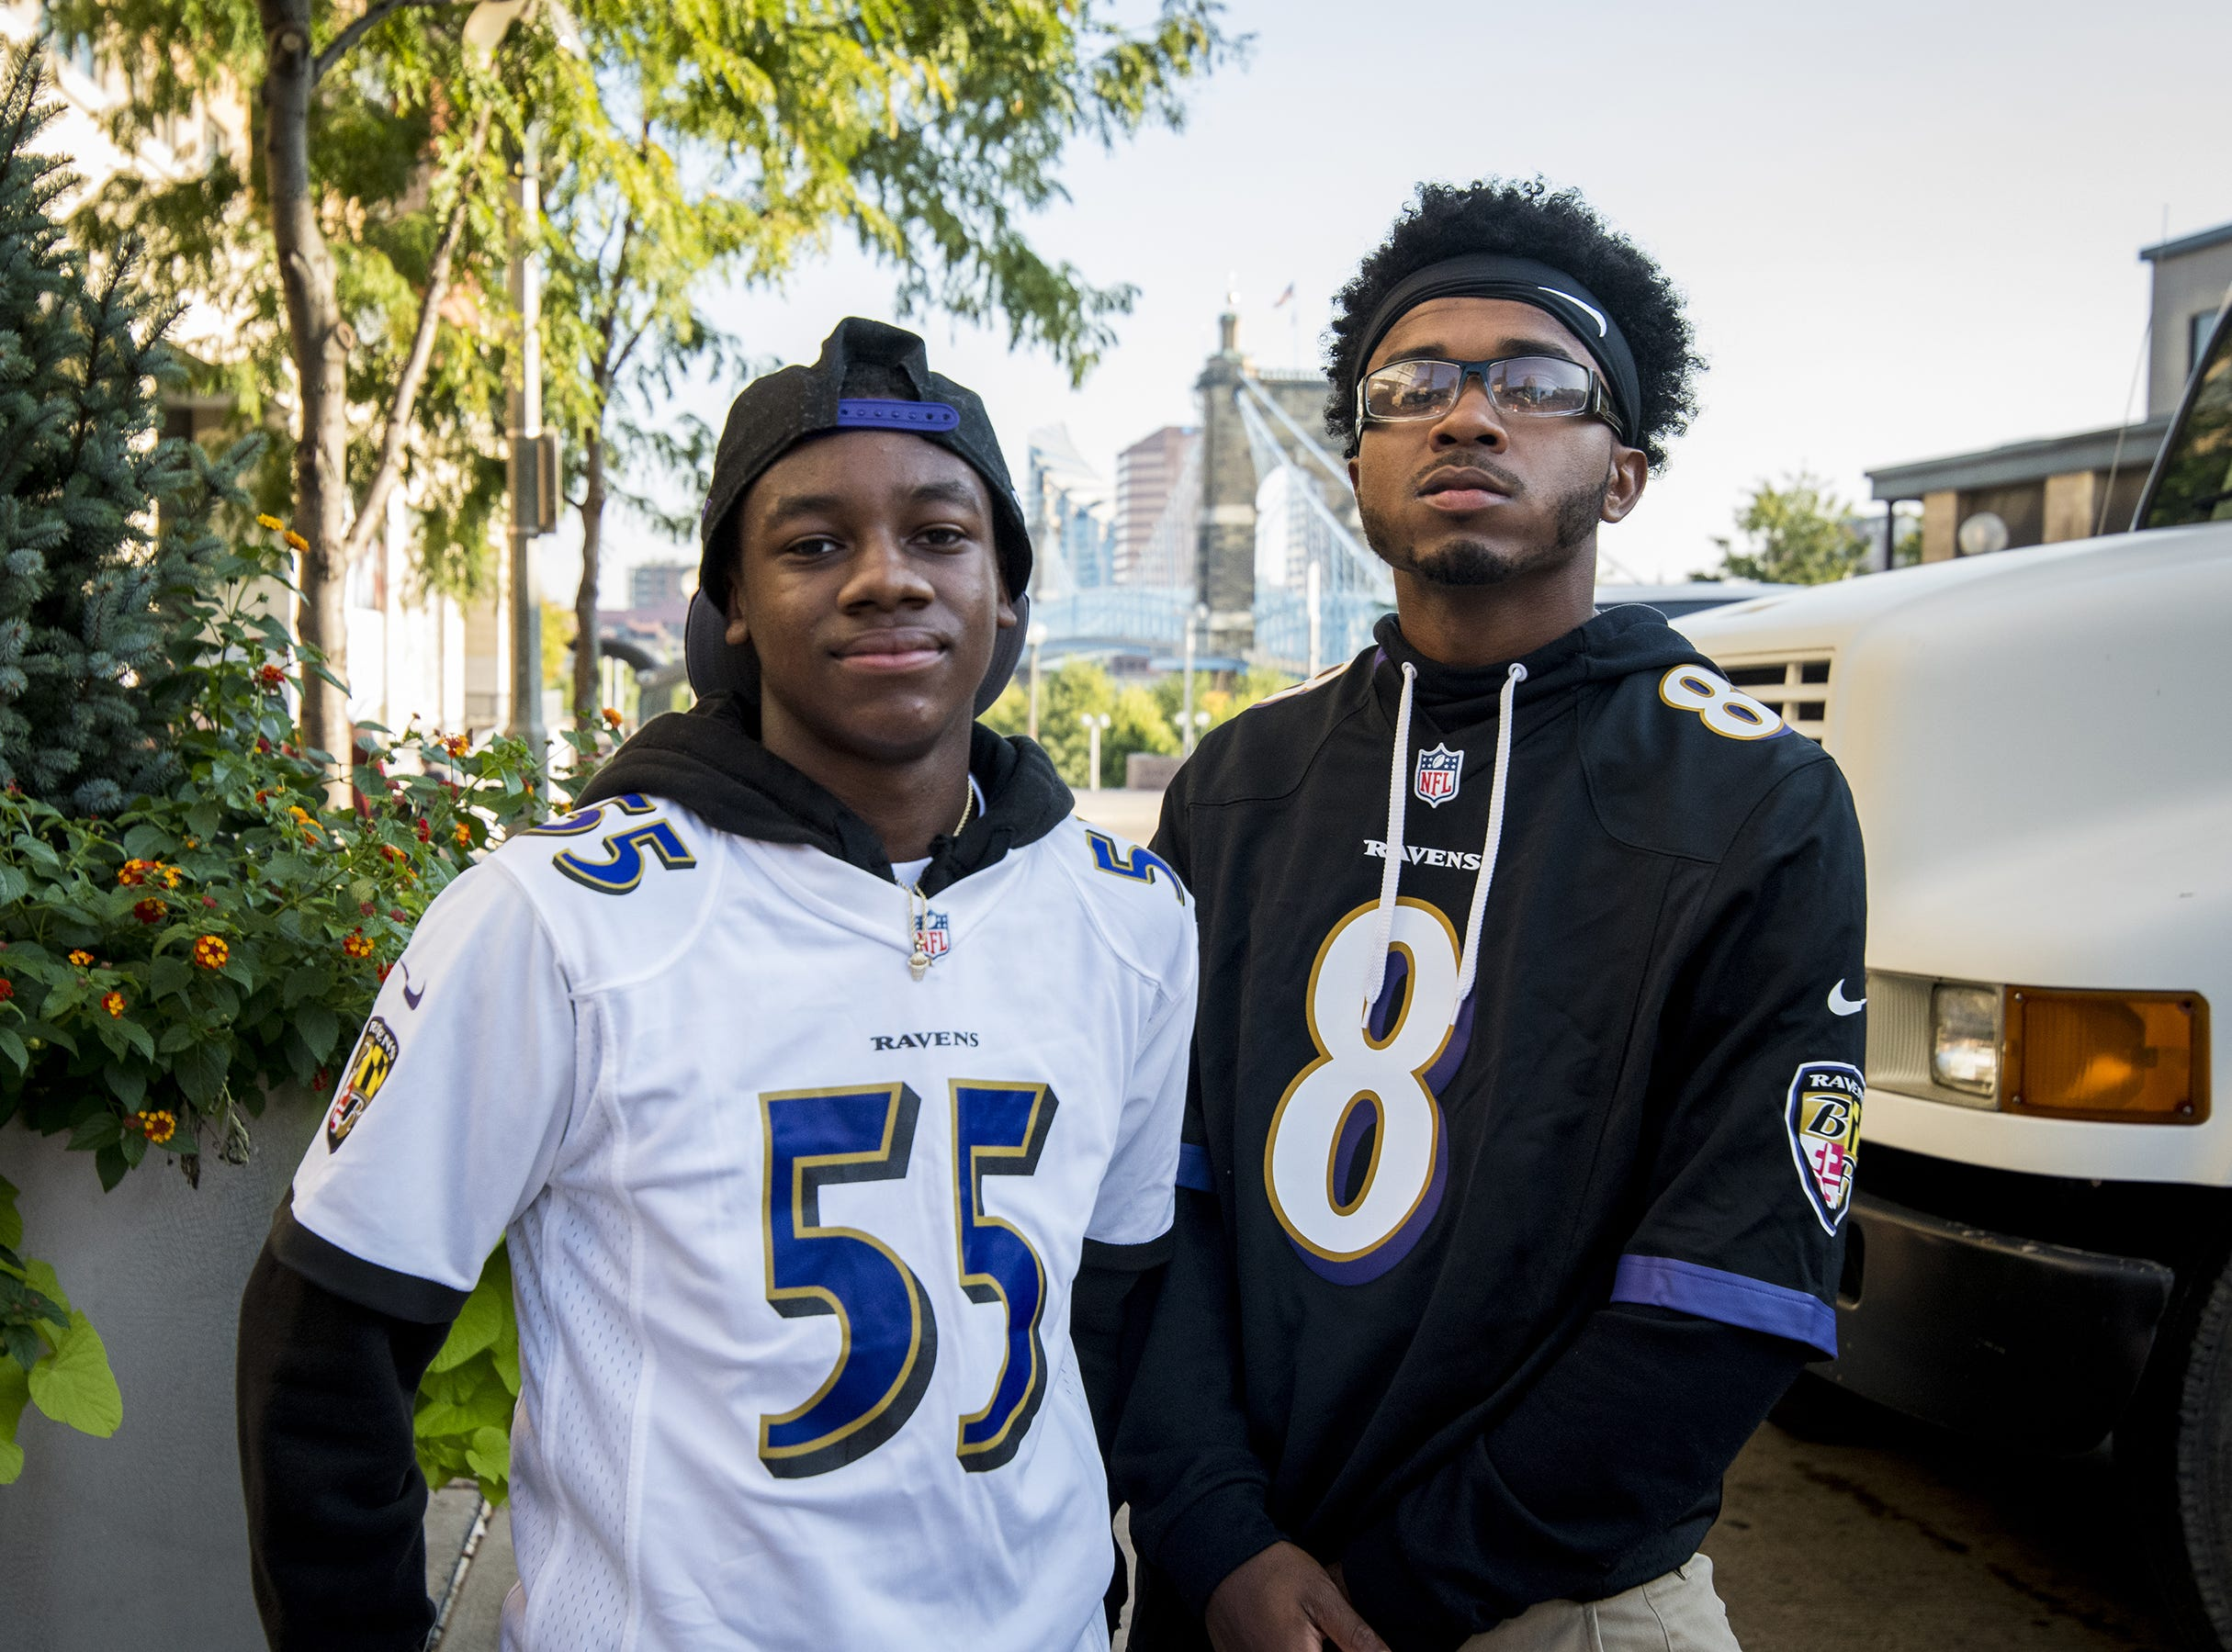 Ravens fans Mike Goyns and DJ Fowlkes of Baltimore hang out at the Bud Light Tailgate zone before the Bengals game against the Baltimore Ravens Thursday, September 13, 2018 in Cincinnati, Ohio.